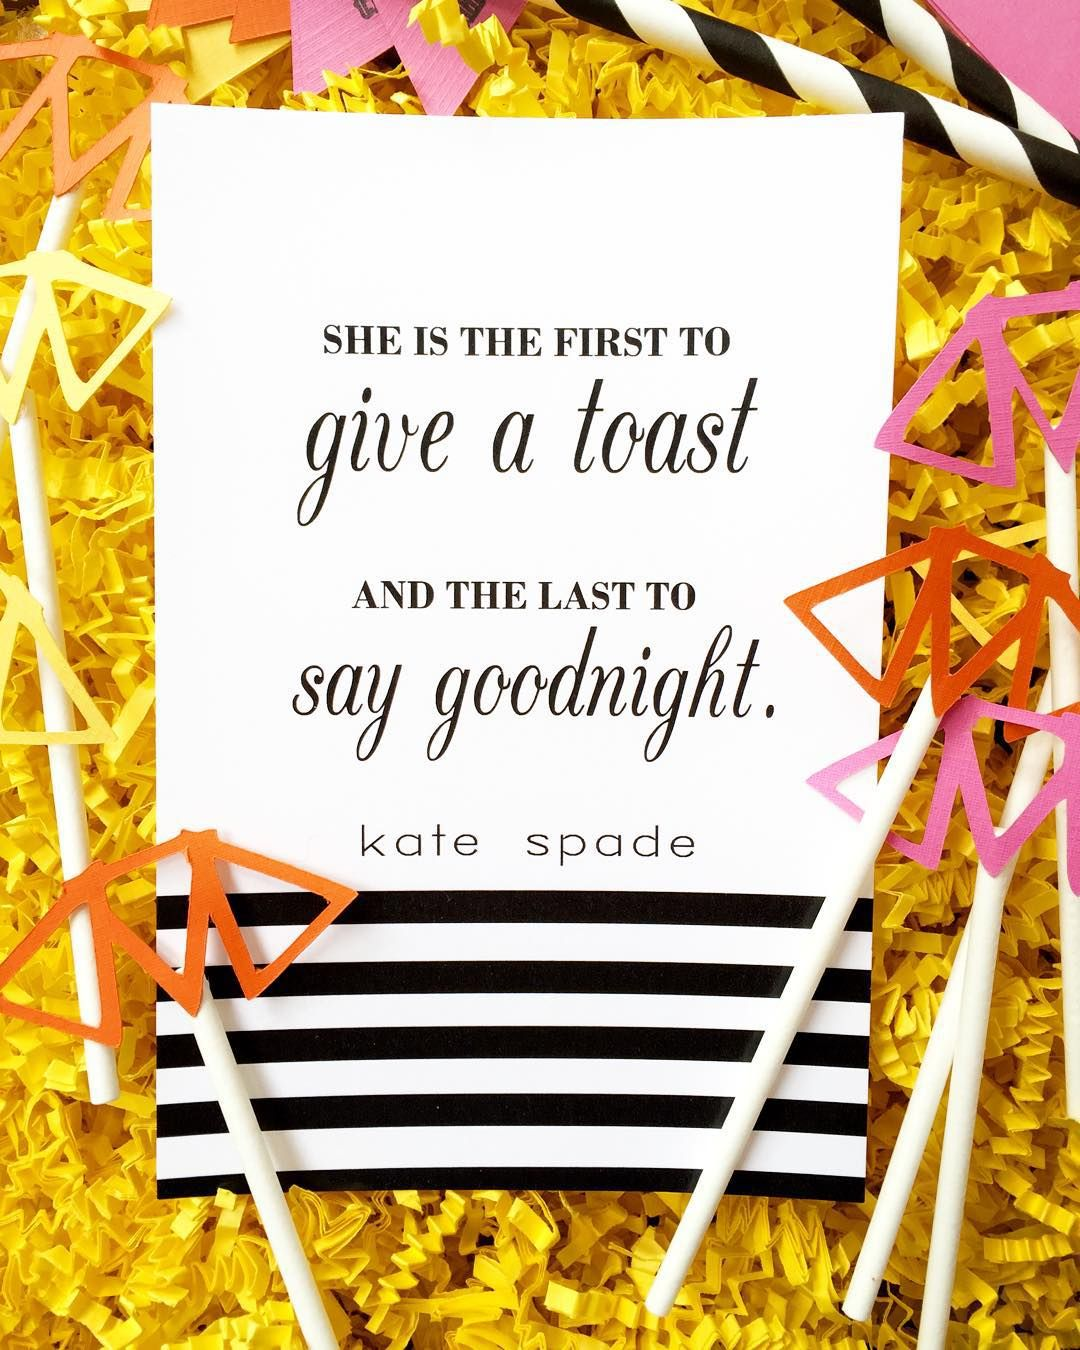 Kate Spade Quotes Kate Spade Quote  Inspirational Phrases & Sayings  Pinterest